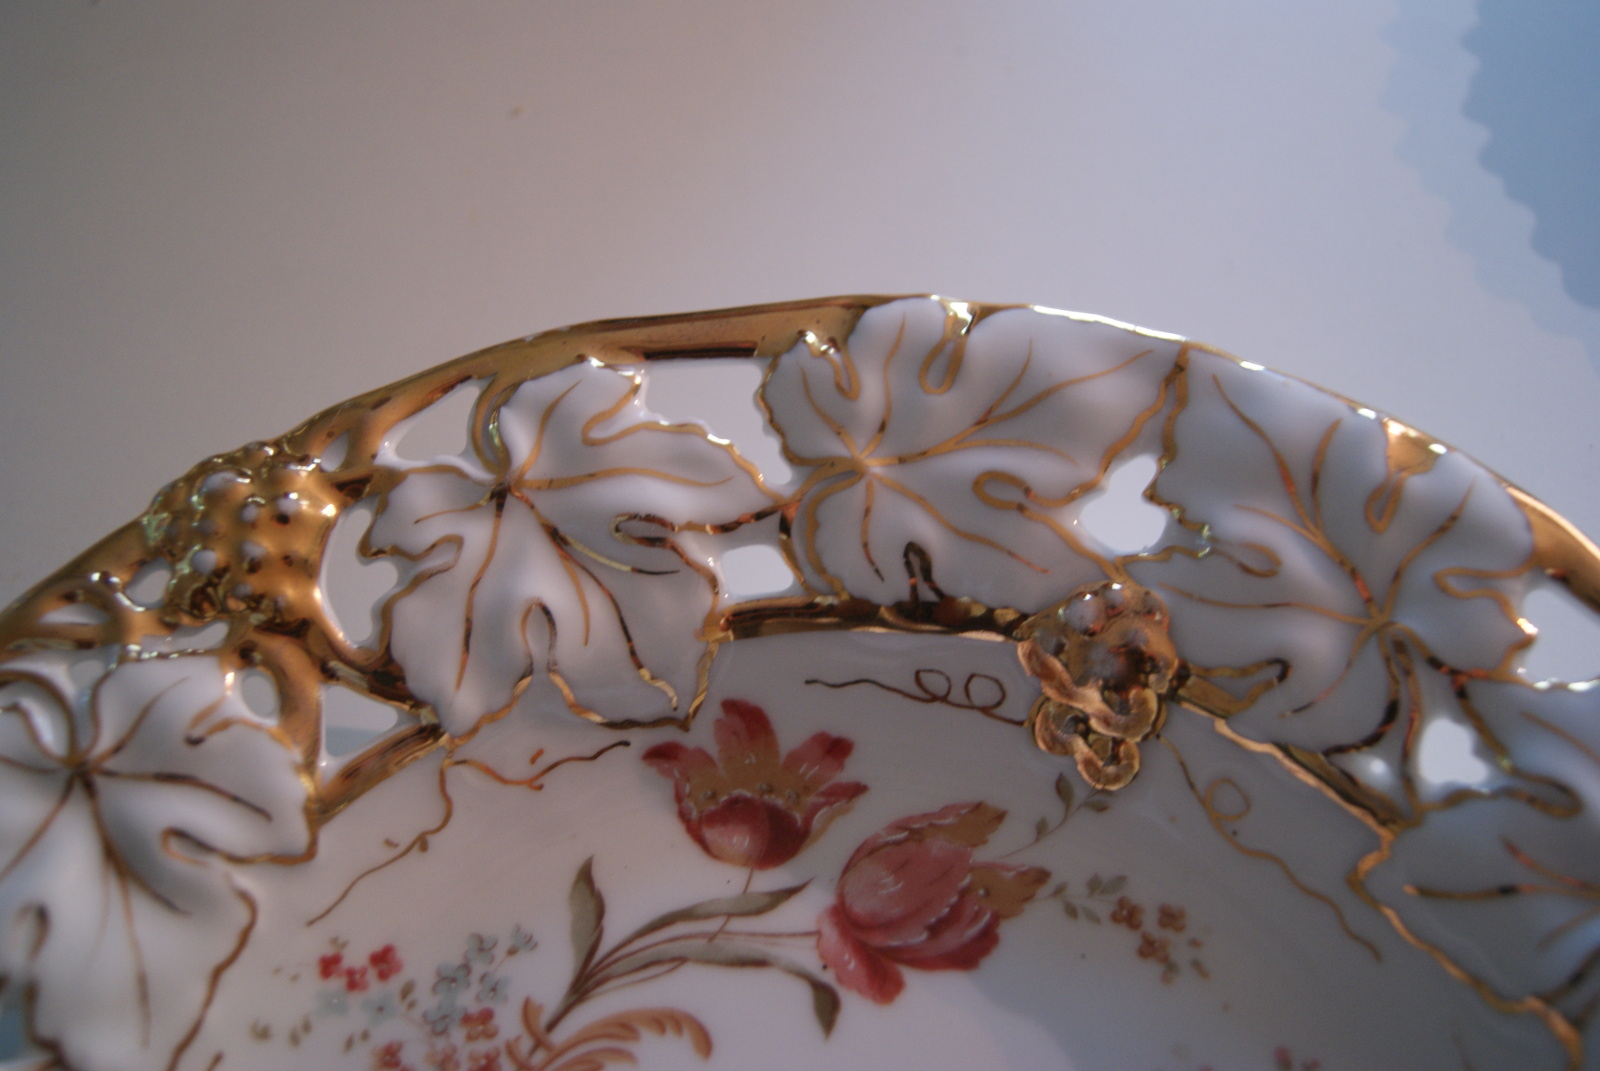 Waldenburg - Altwasser dish with flowers leaf and grapes relief and golden decor